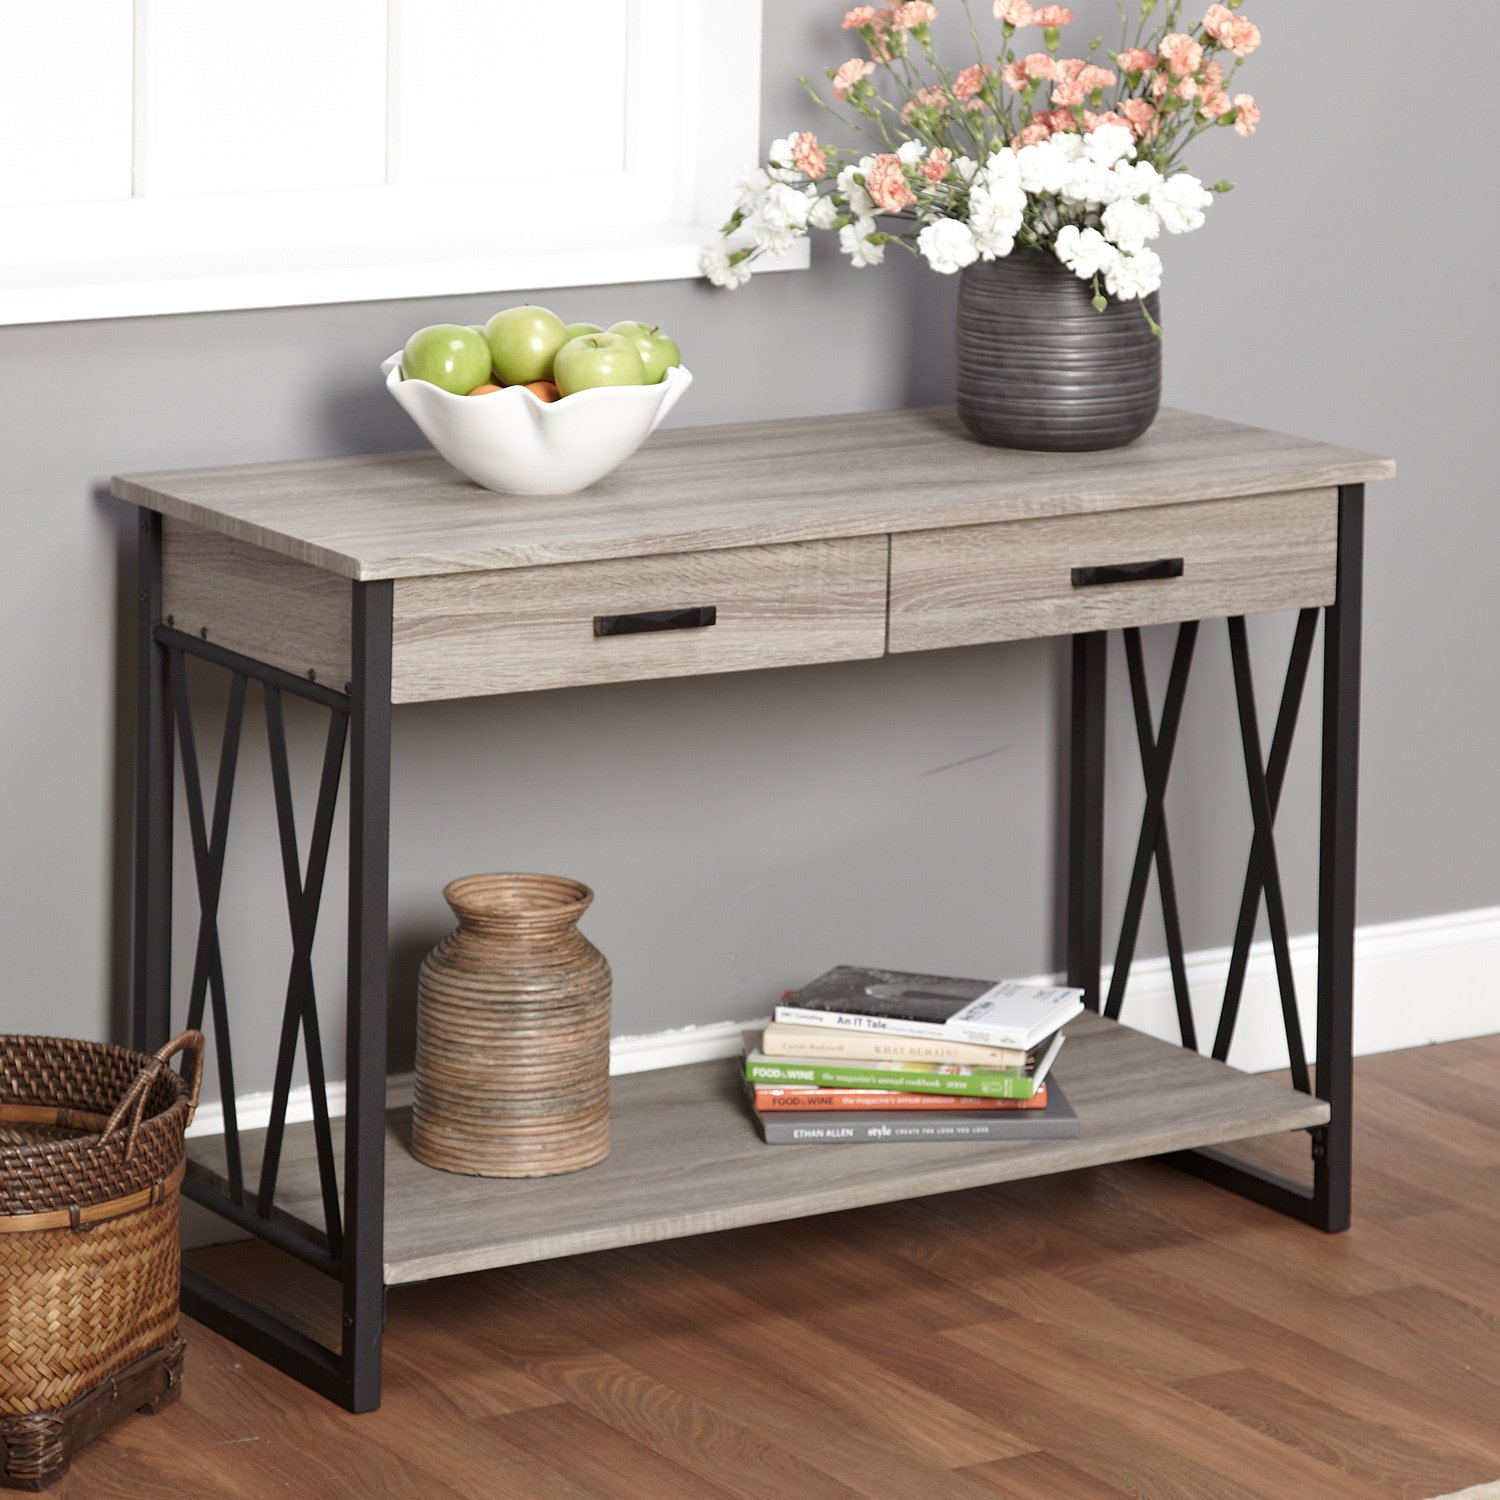 Console Sofa Table Living Home Furniture Decor Room Hallway Accent Entryway Wood Ebay